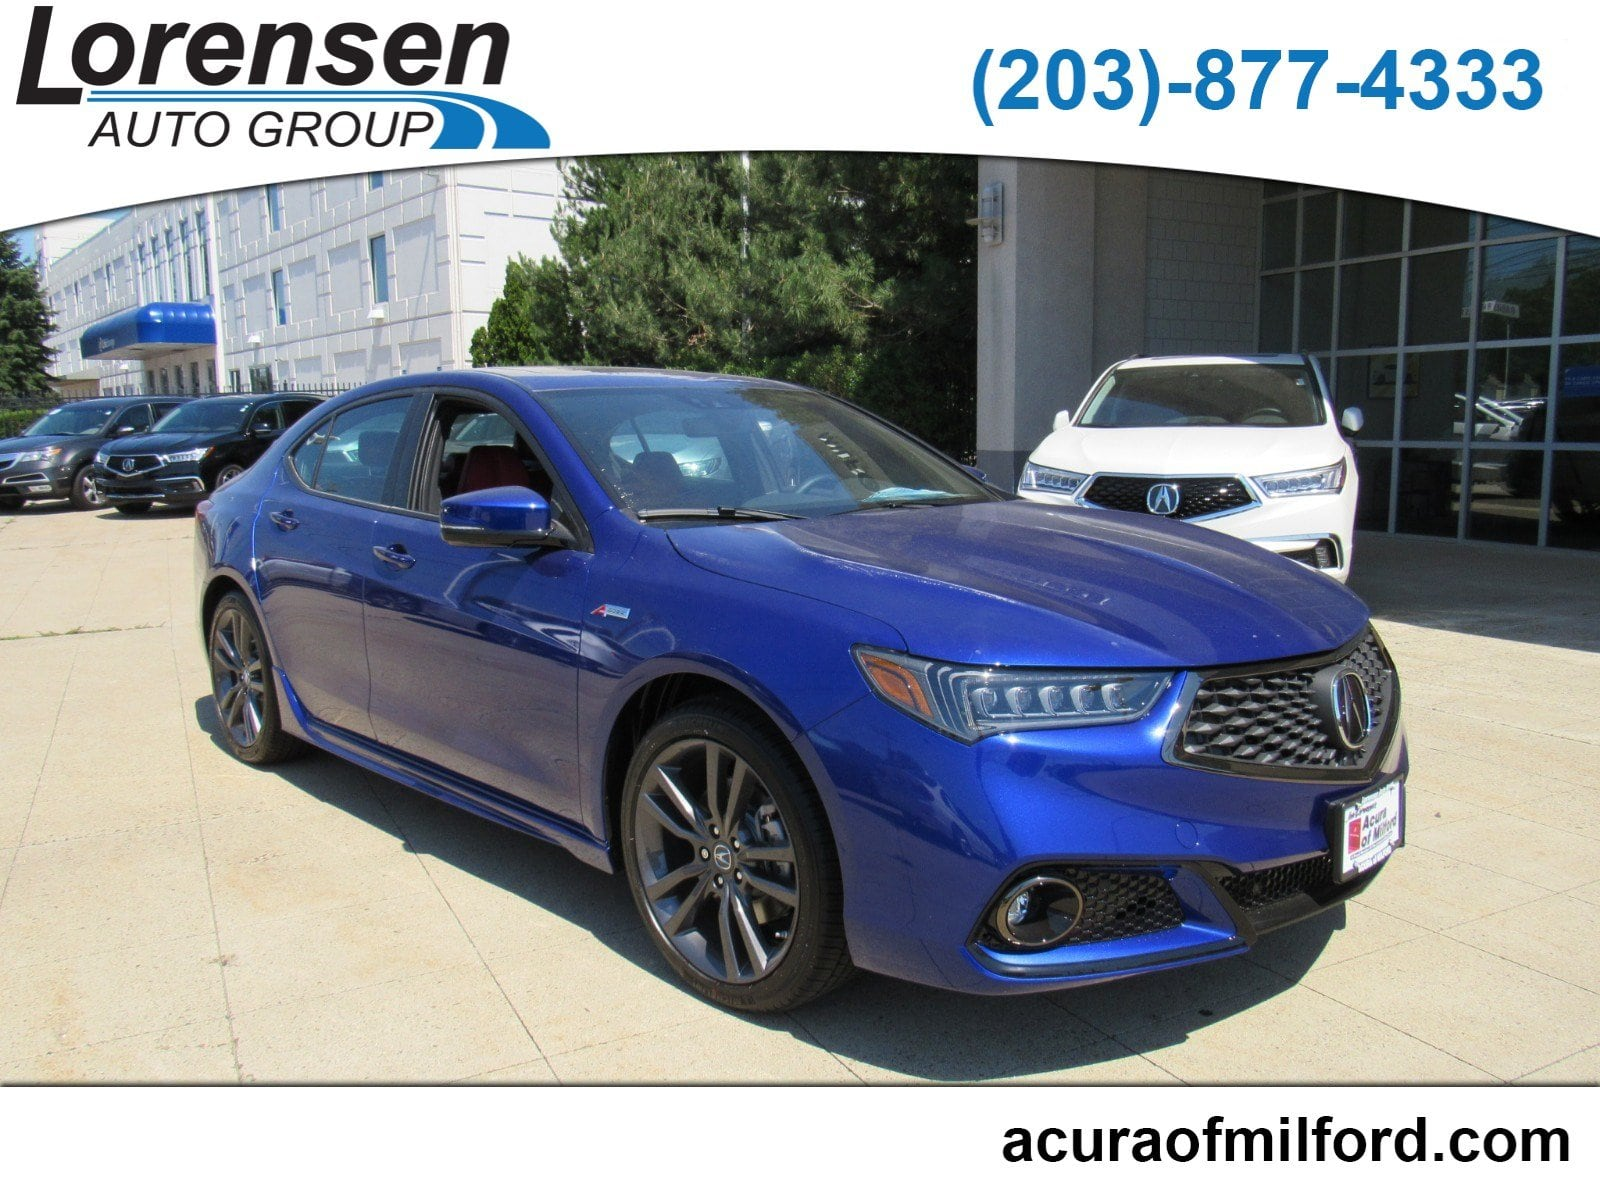 New 2019 Acura TLX 3 5 V 6 9 AT SH AWD with A SPEC RED Sedan in